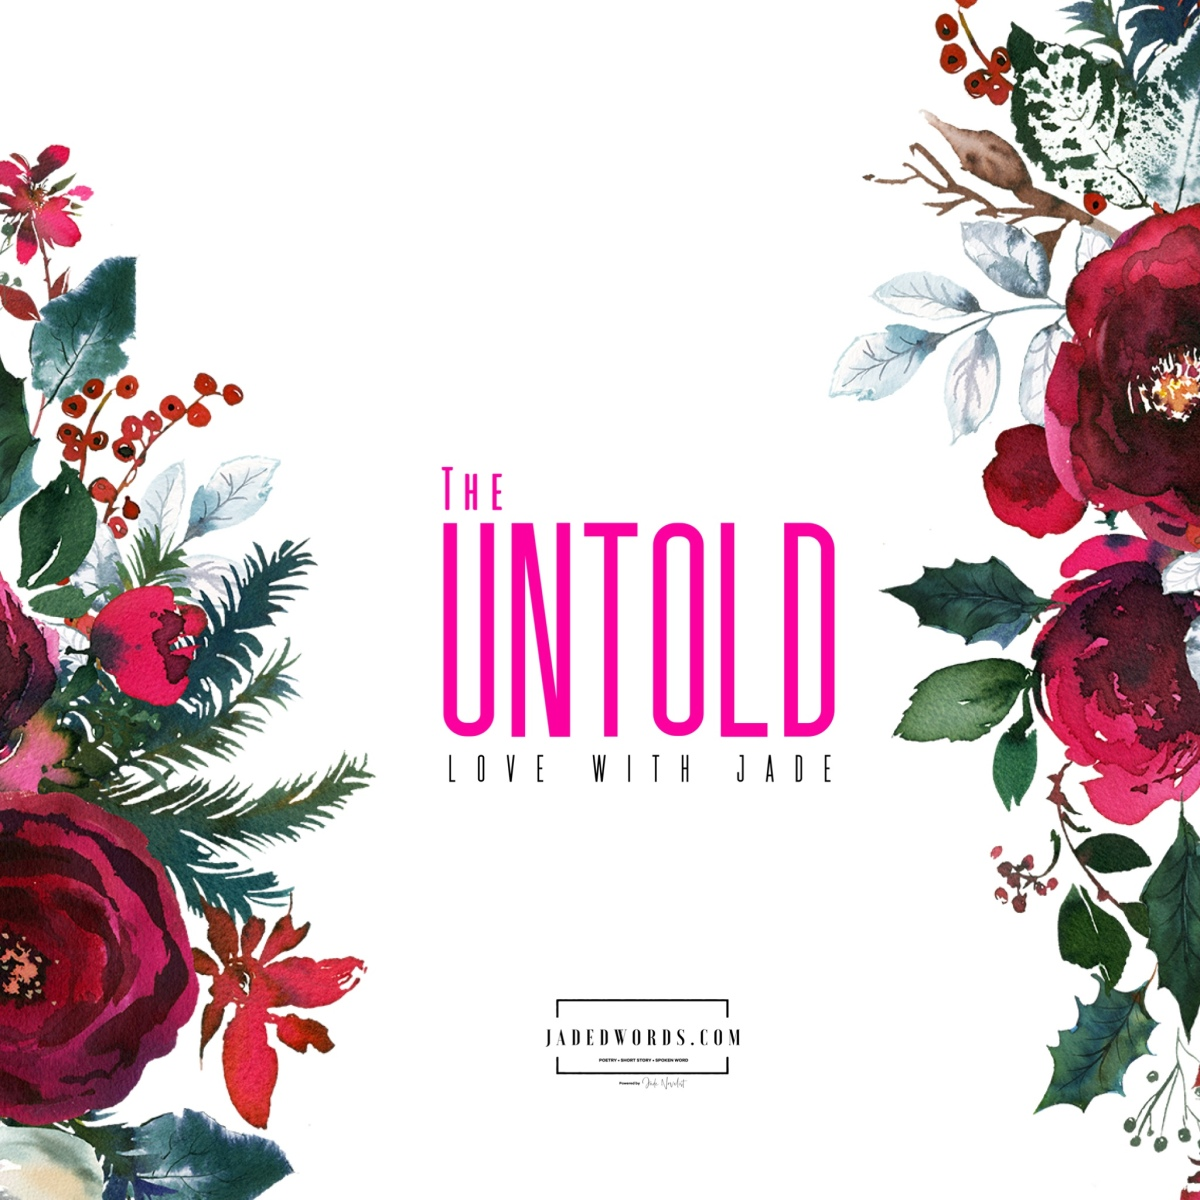 The Untold: Love With Jade